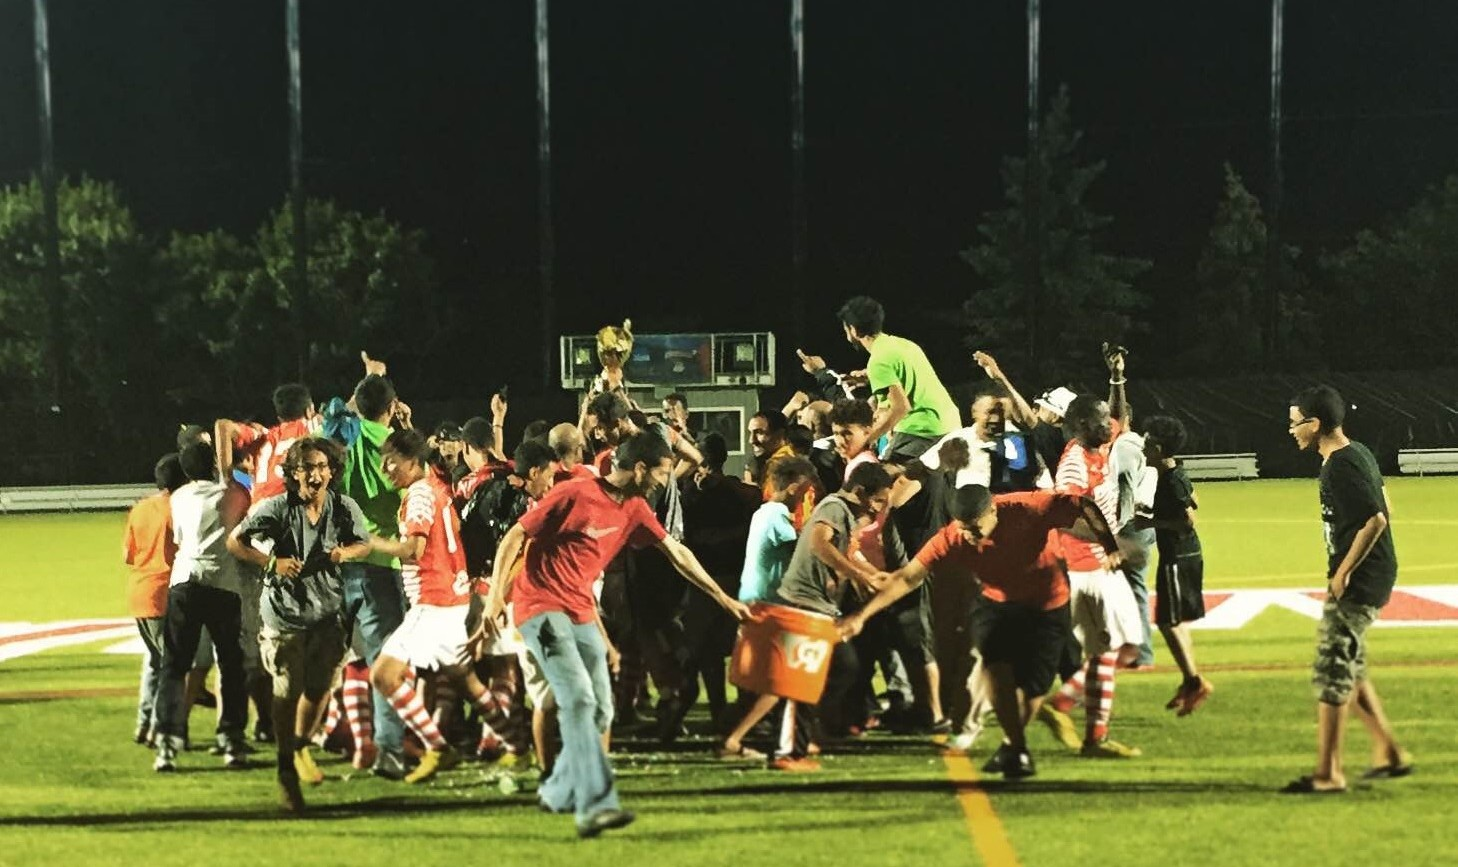 Championship Division team FC Yemen won the 2015 Tehel Cup, igniting a celebration among the team and the Yemeni soccer community. (Ben Tsujimoto/Buffalo News)